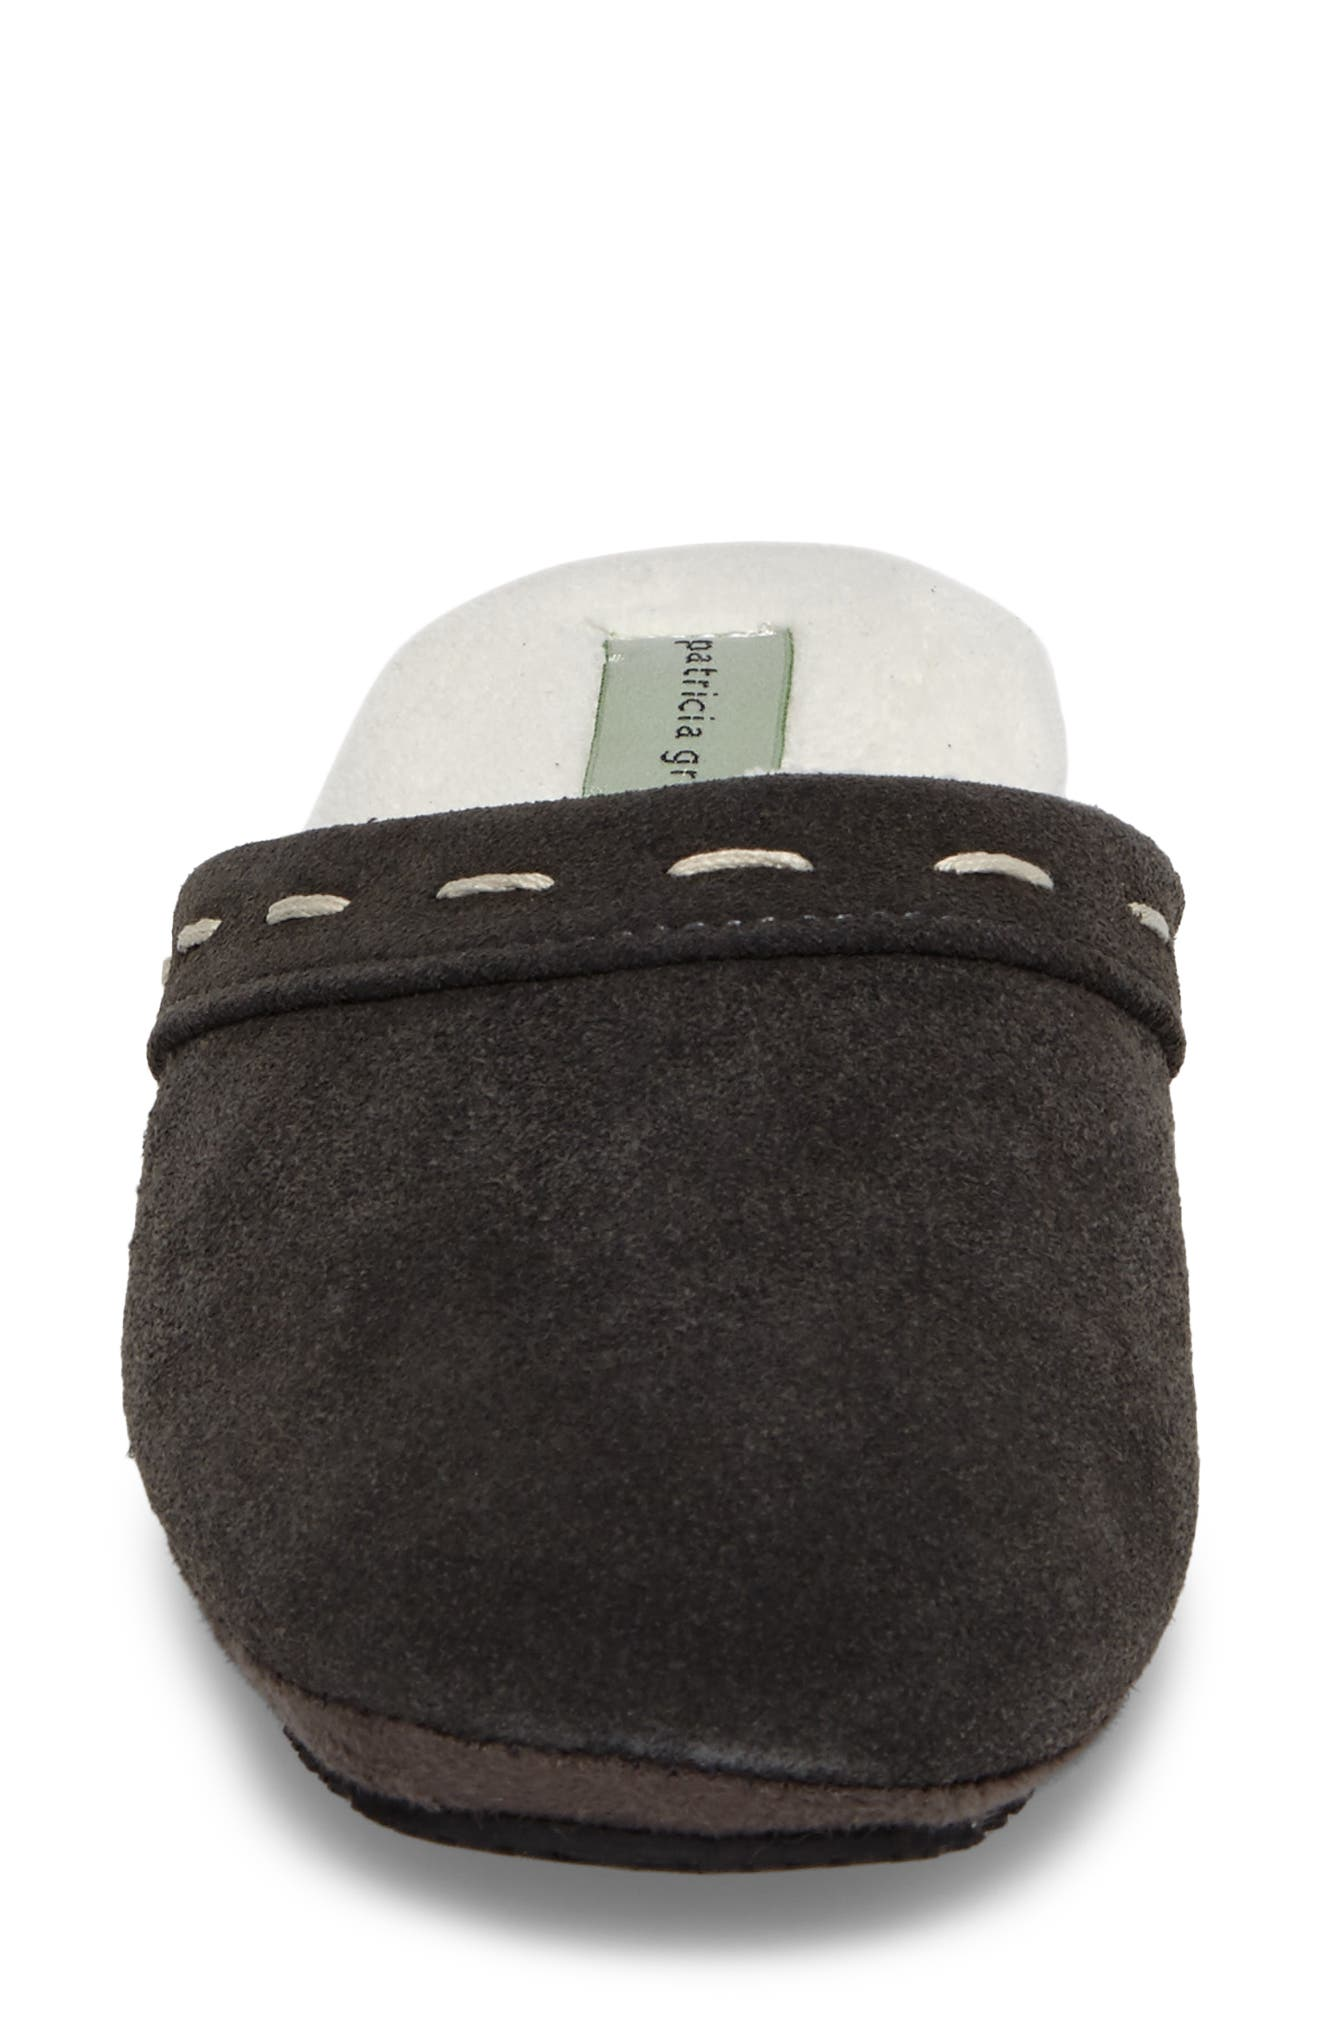 Mayfair Wedge Slipper,                             Alternate thumbnail 5, color,                             Charcoal Suede